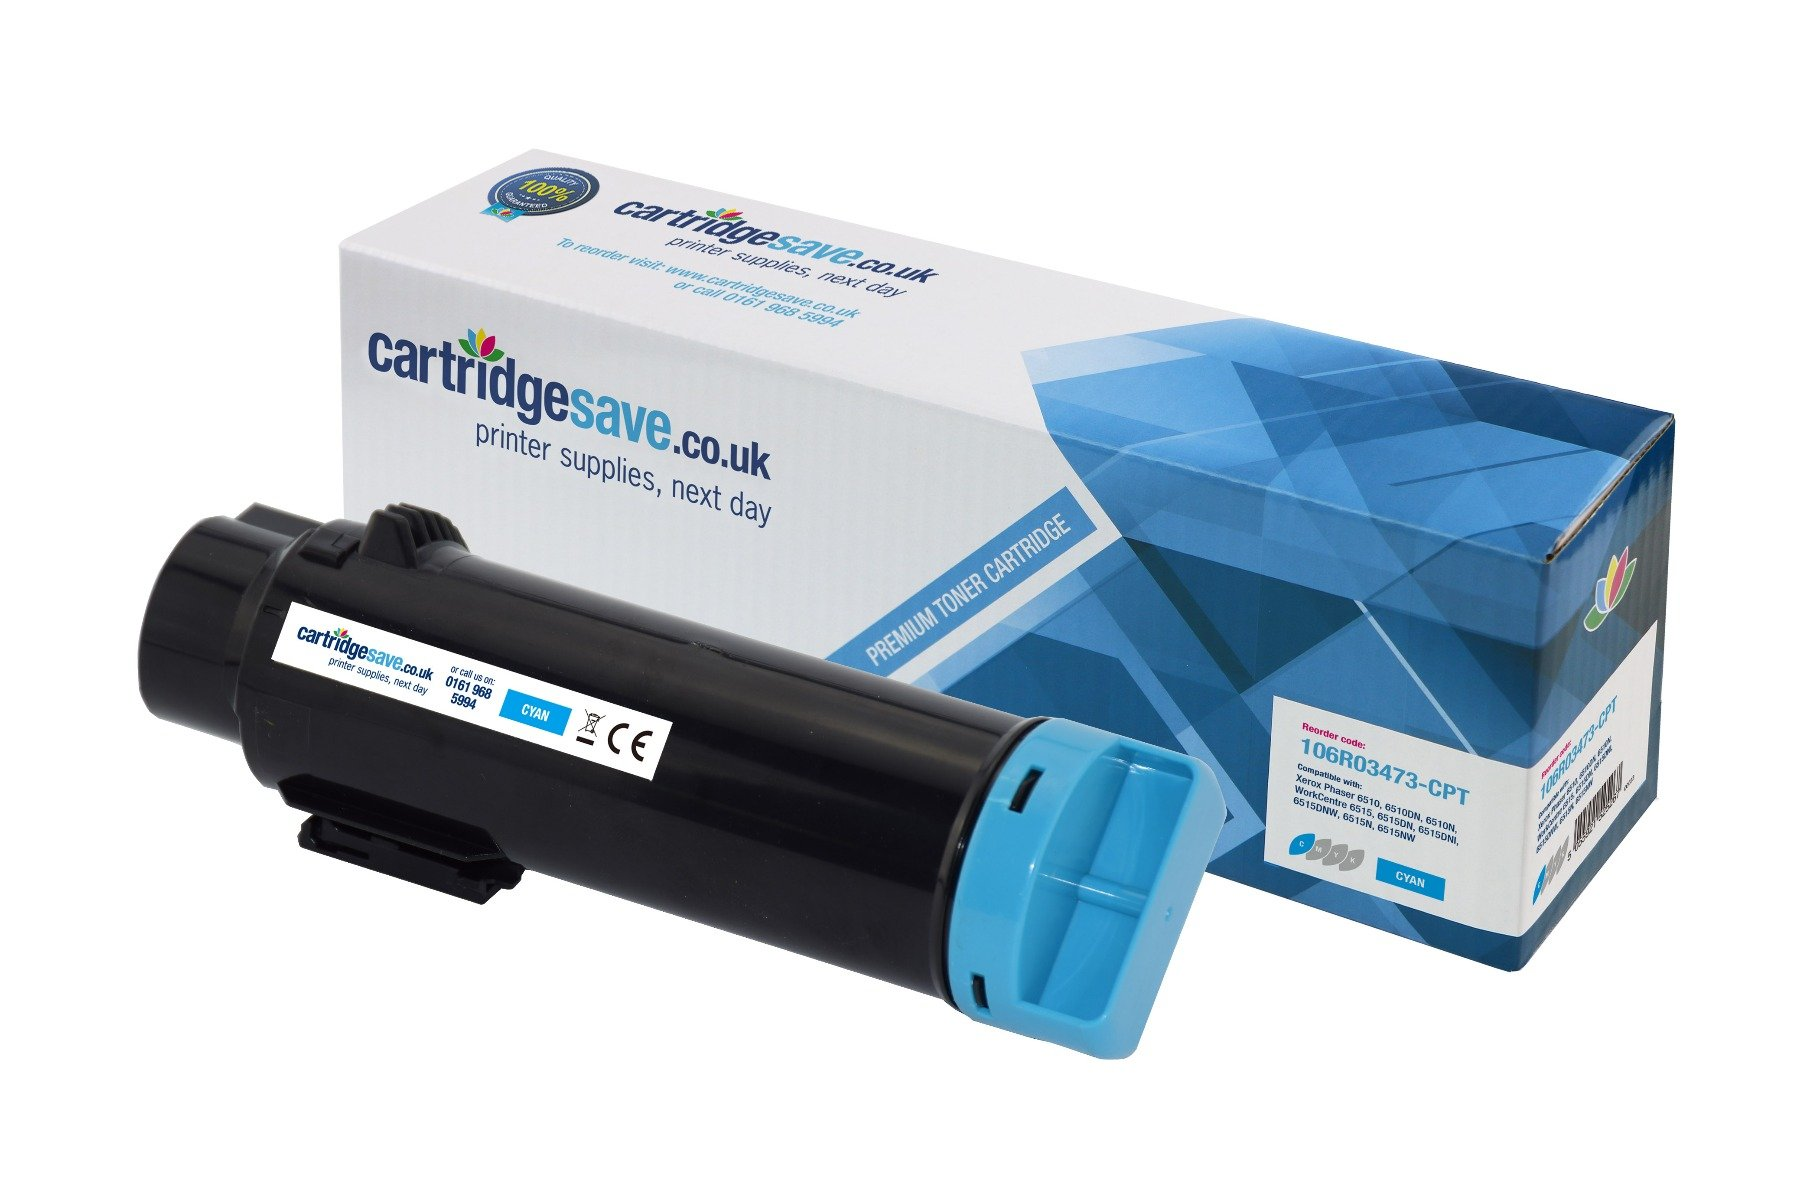 Compatible Cyan Xerox 106R03473 Toner Cartridge - (106R03473)